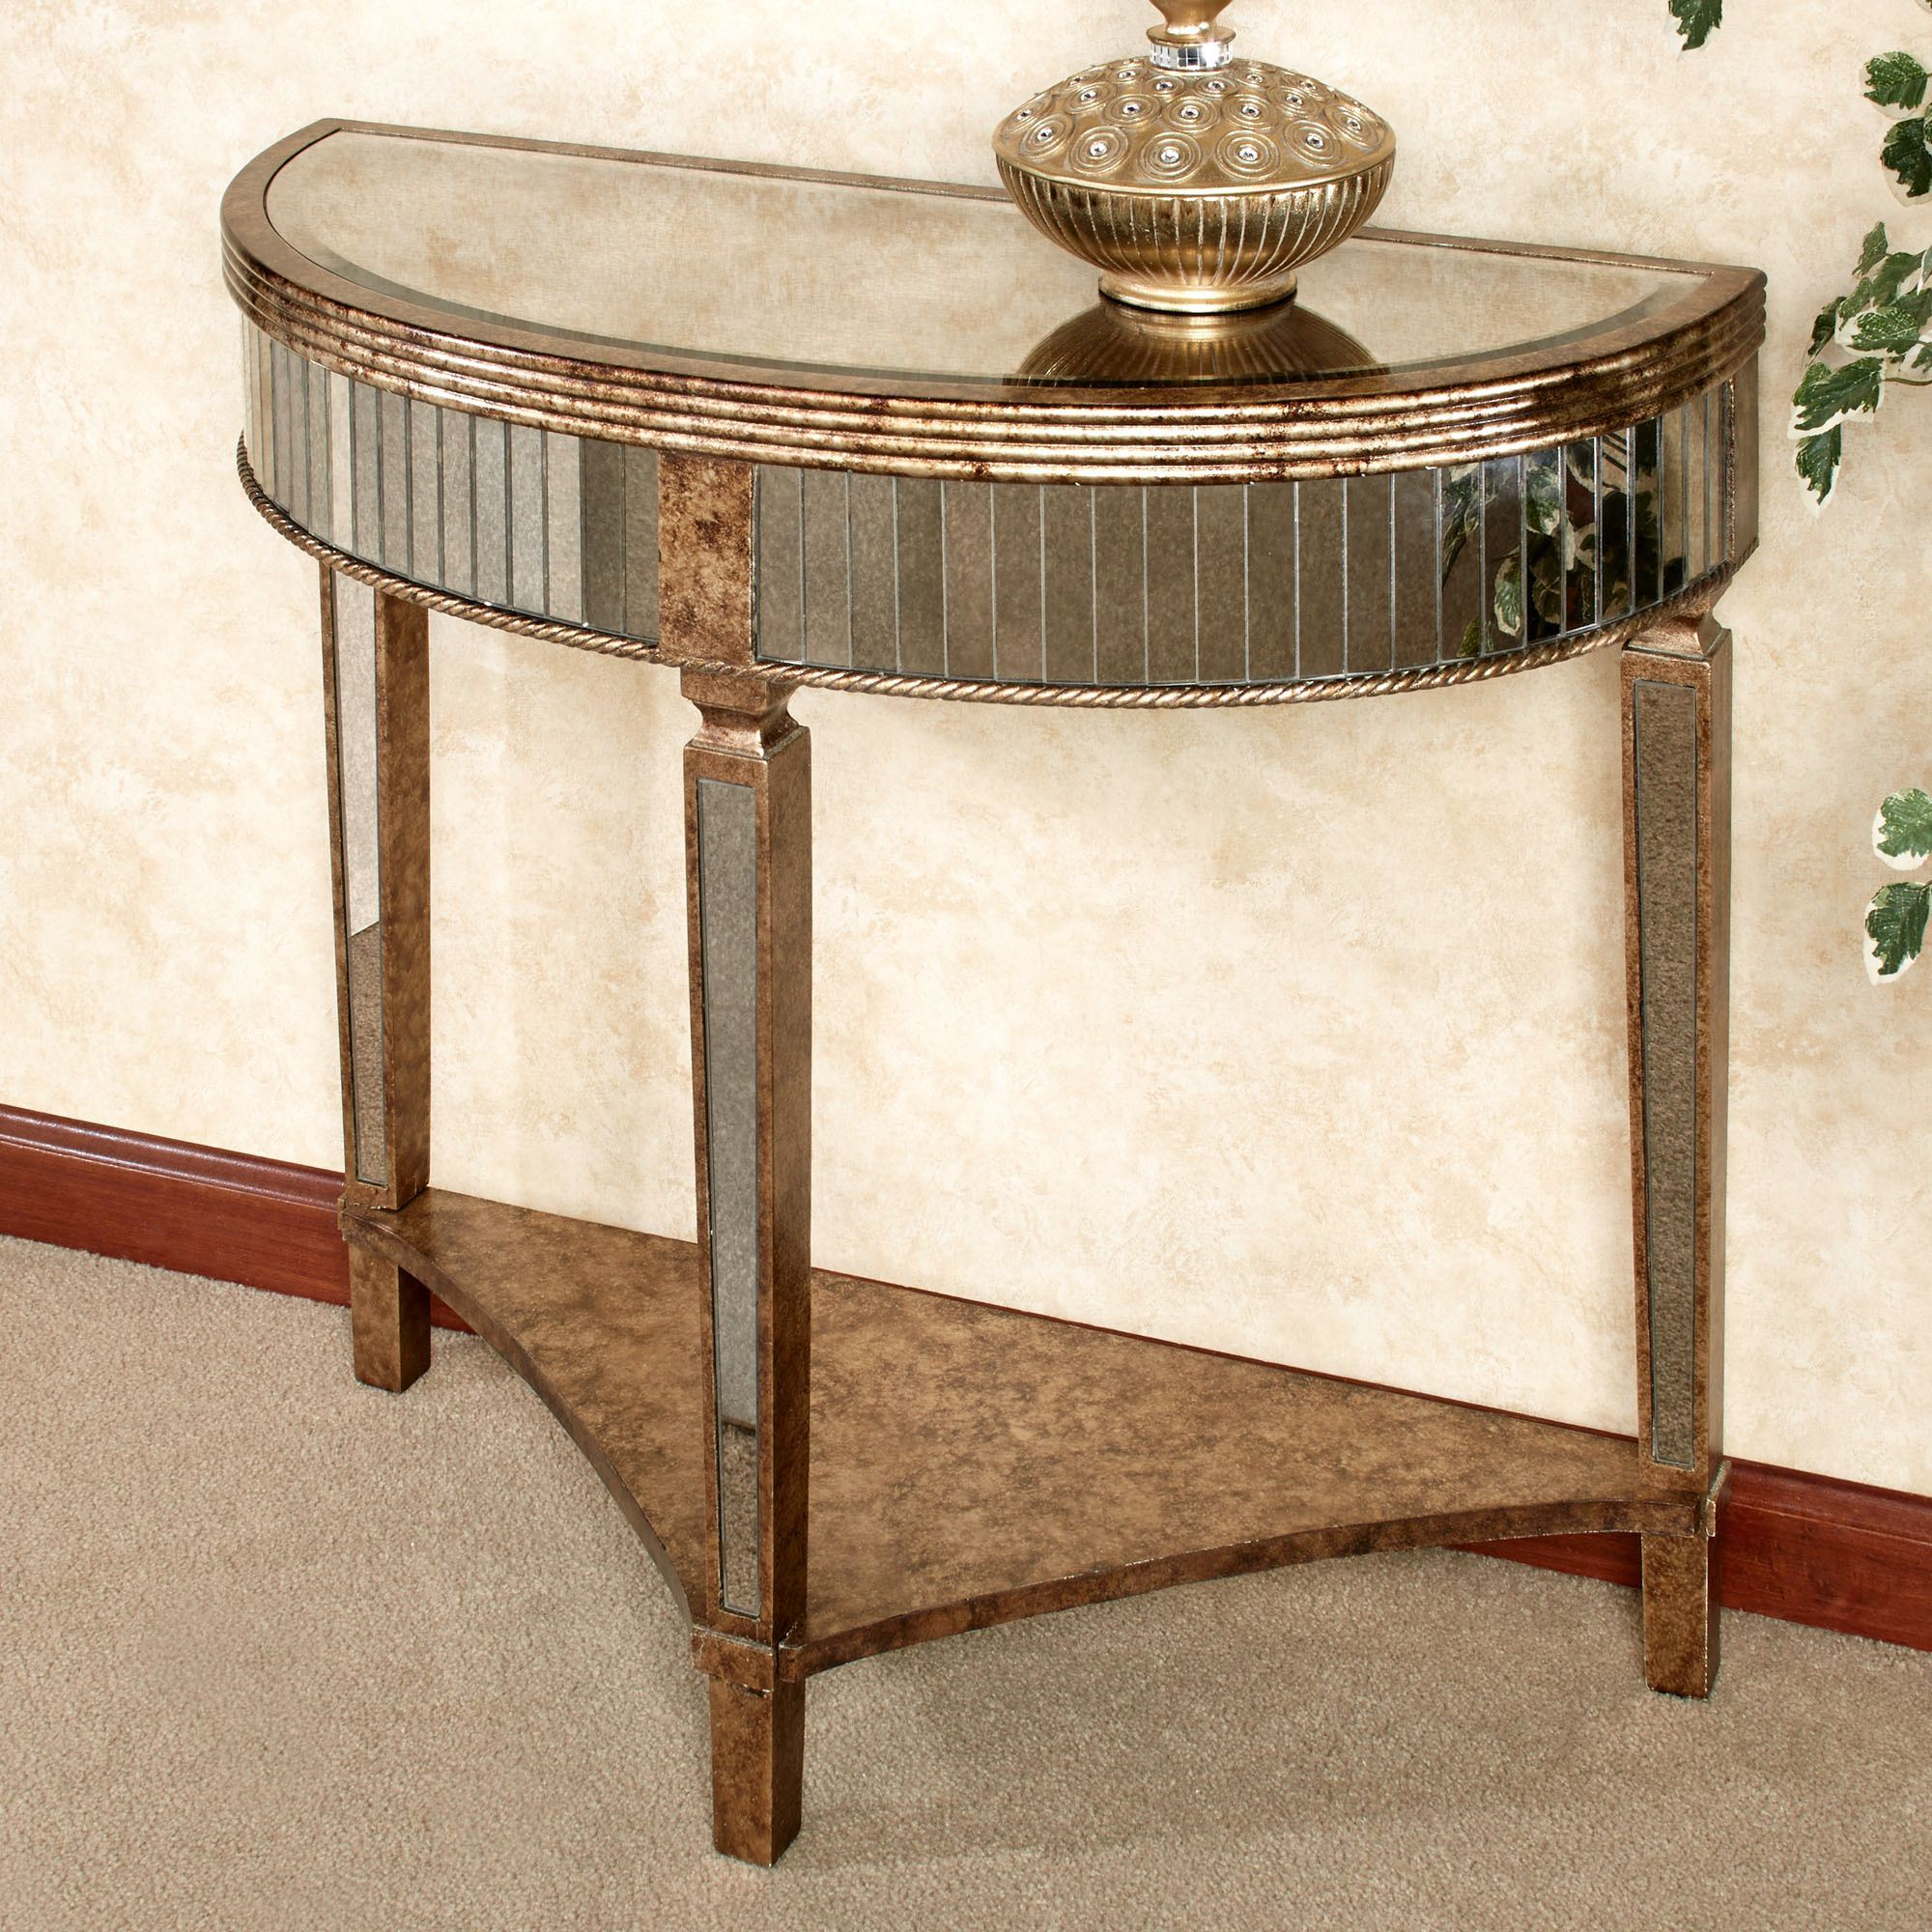 Gentil Bella Mina Mirrored Console Table Venetian Gold. Touch To Zoom